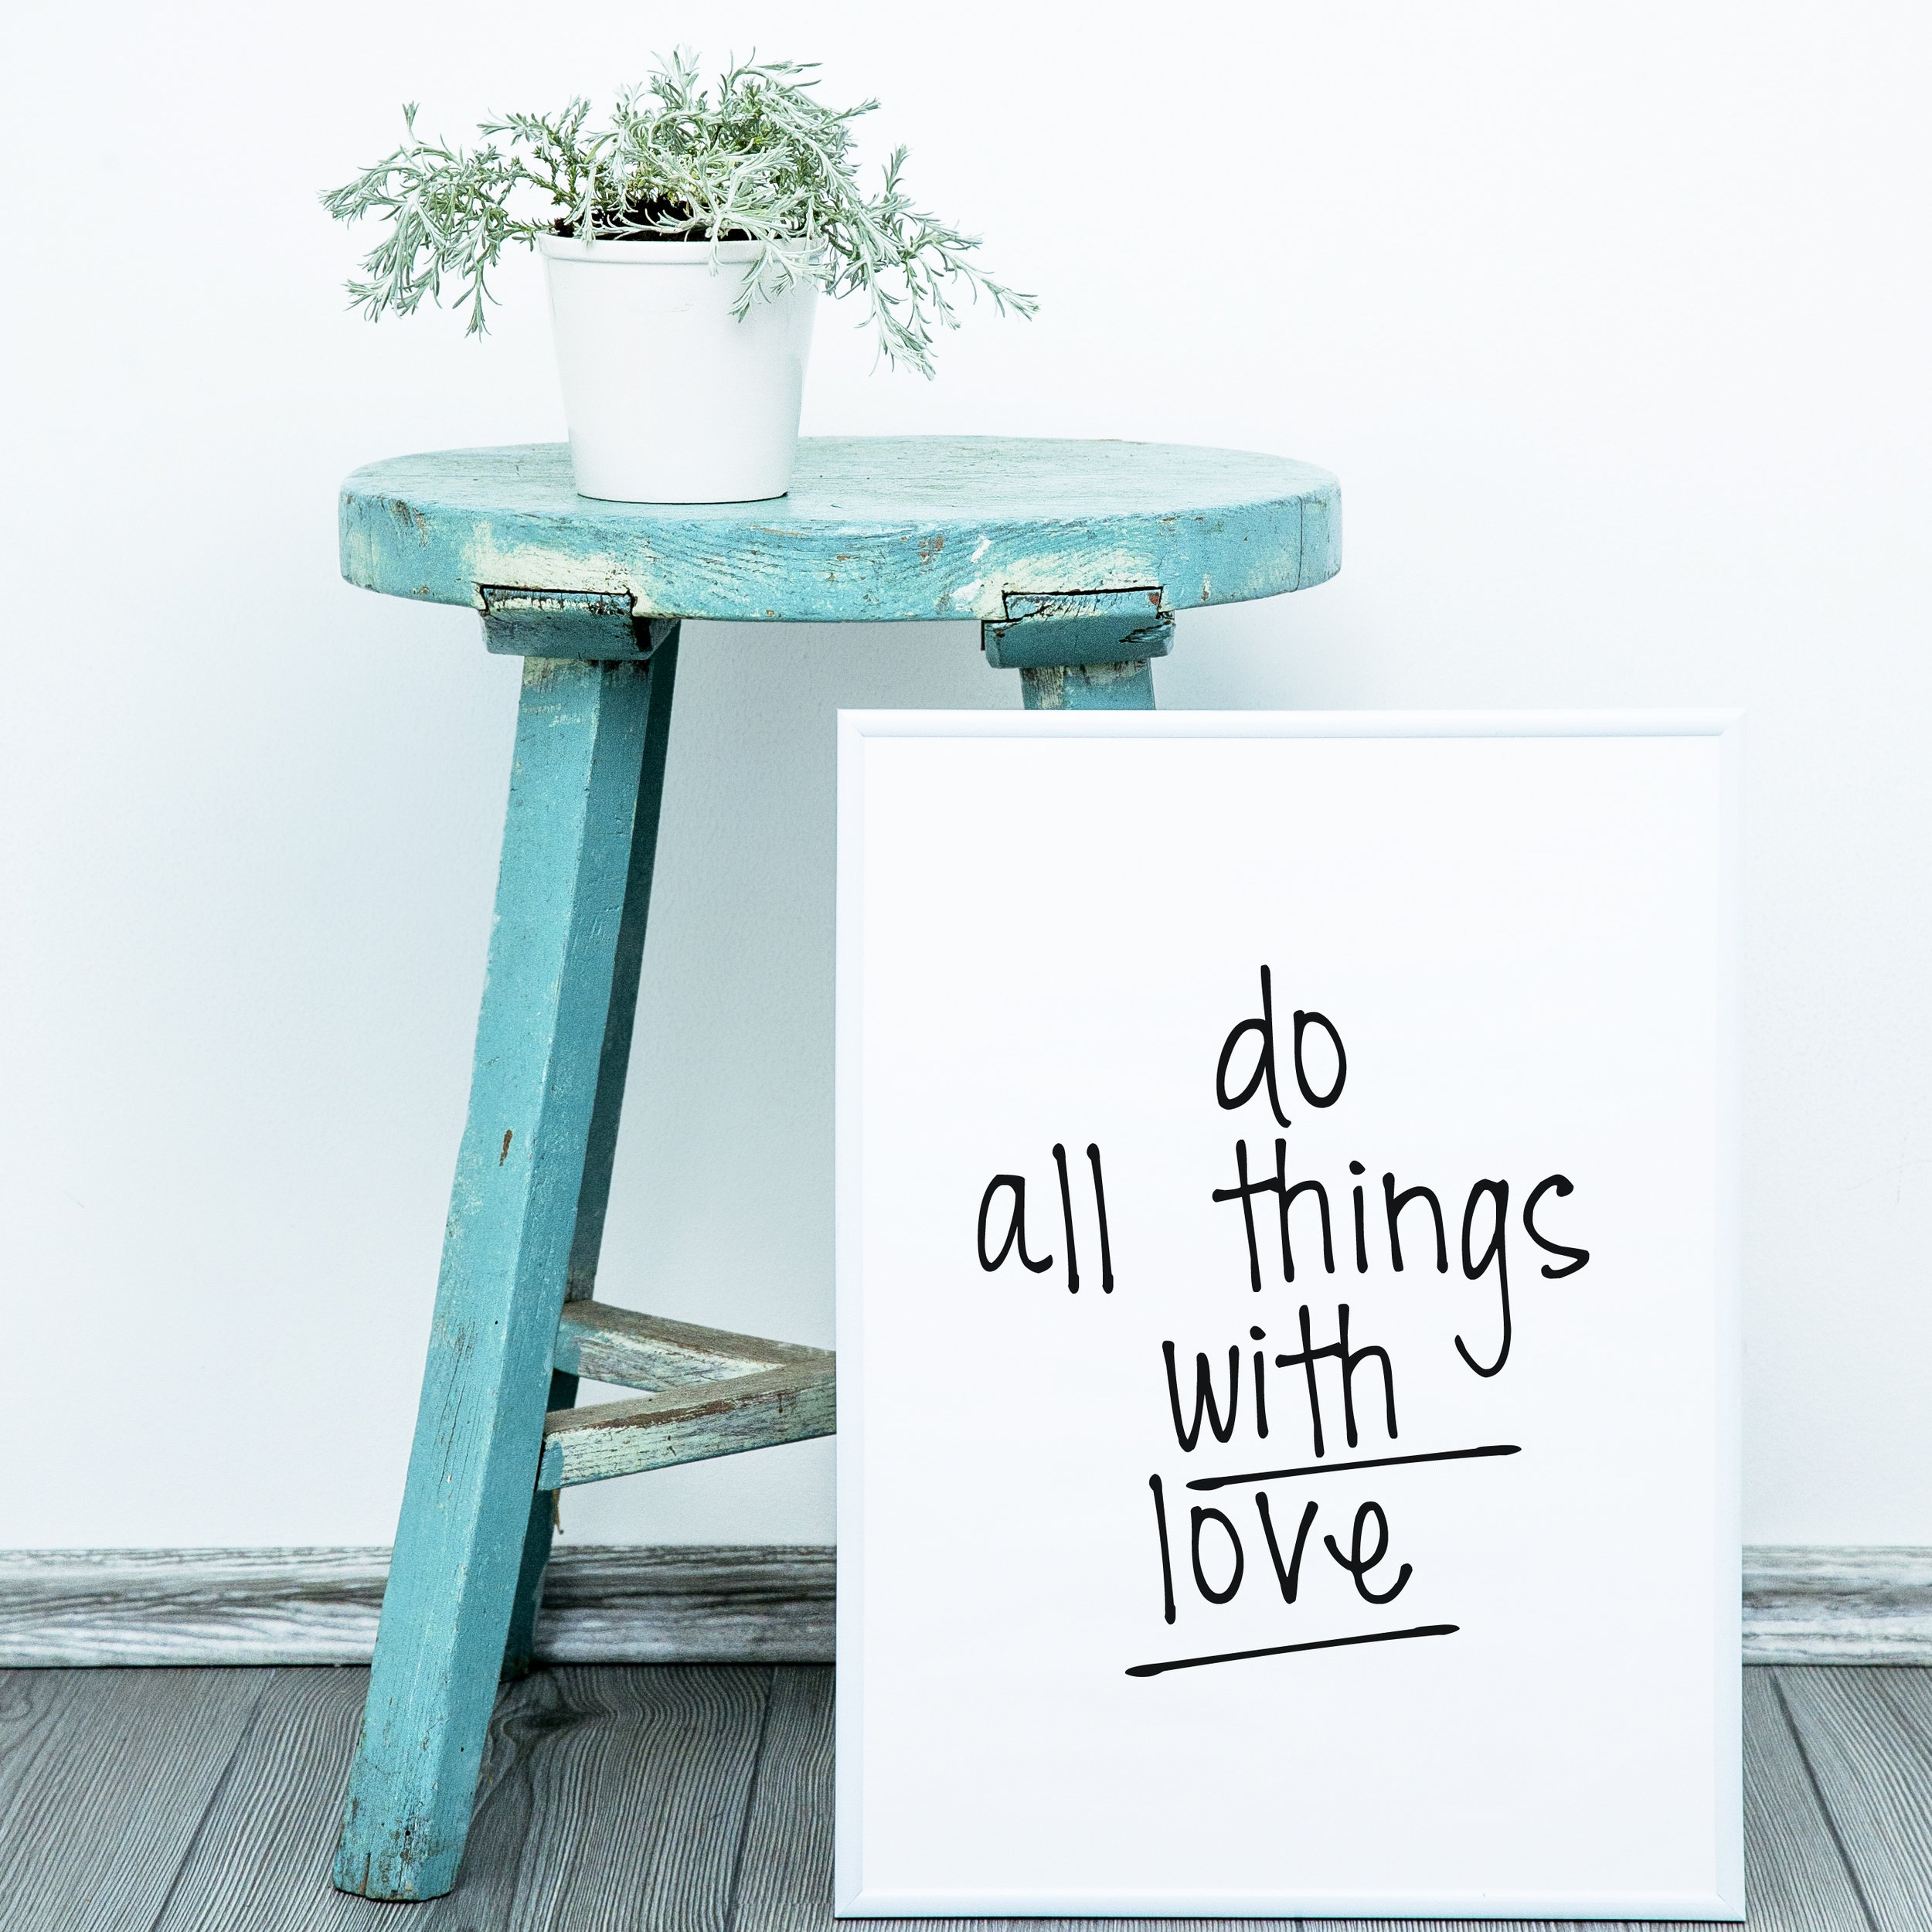 do+all+things+with+love+for+foundatin+page.jpg